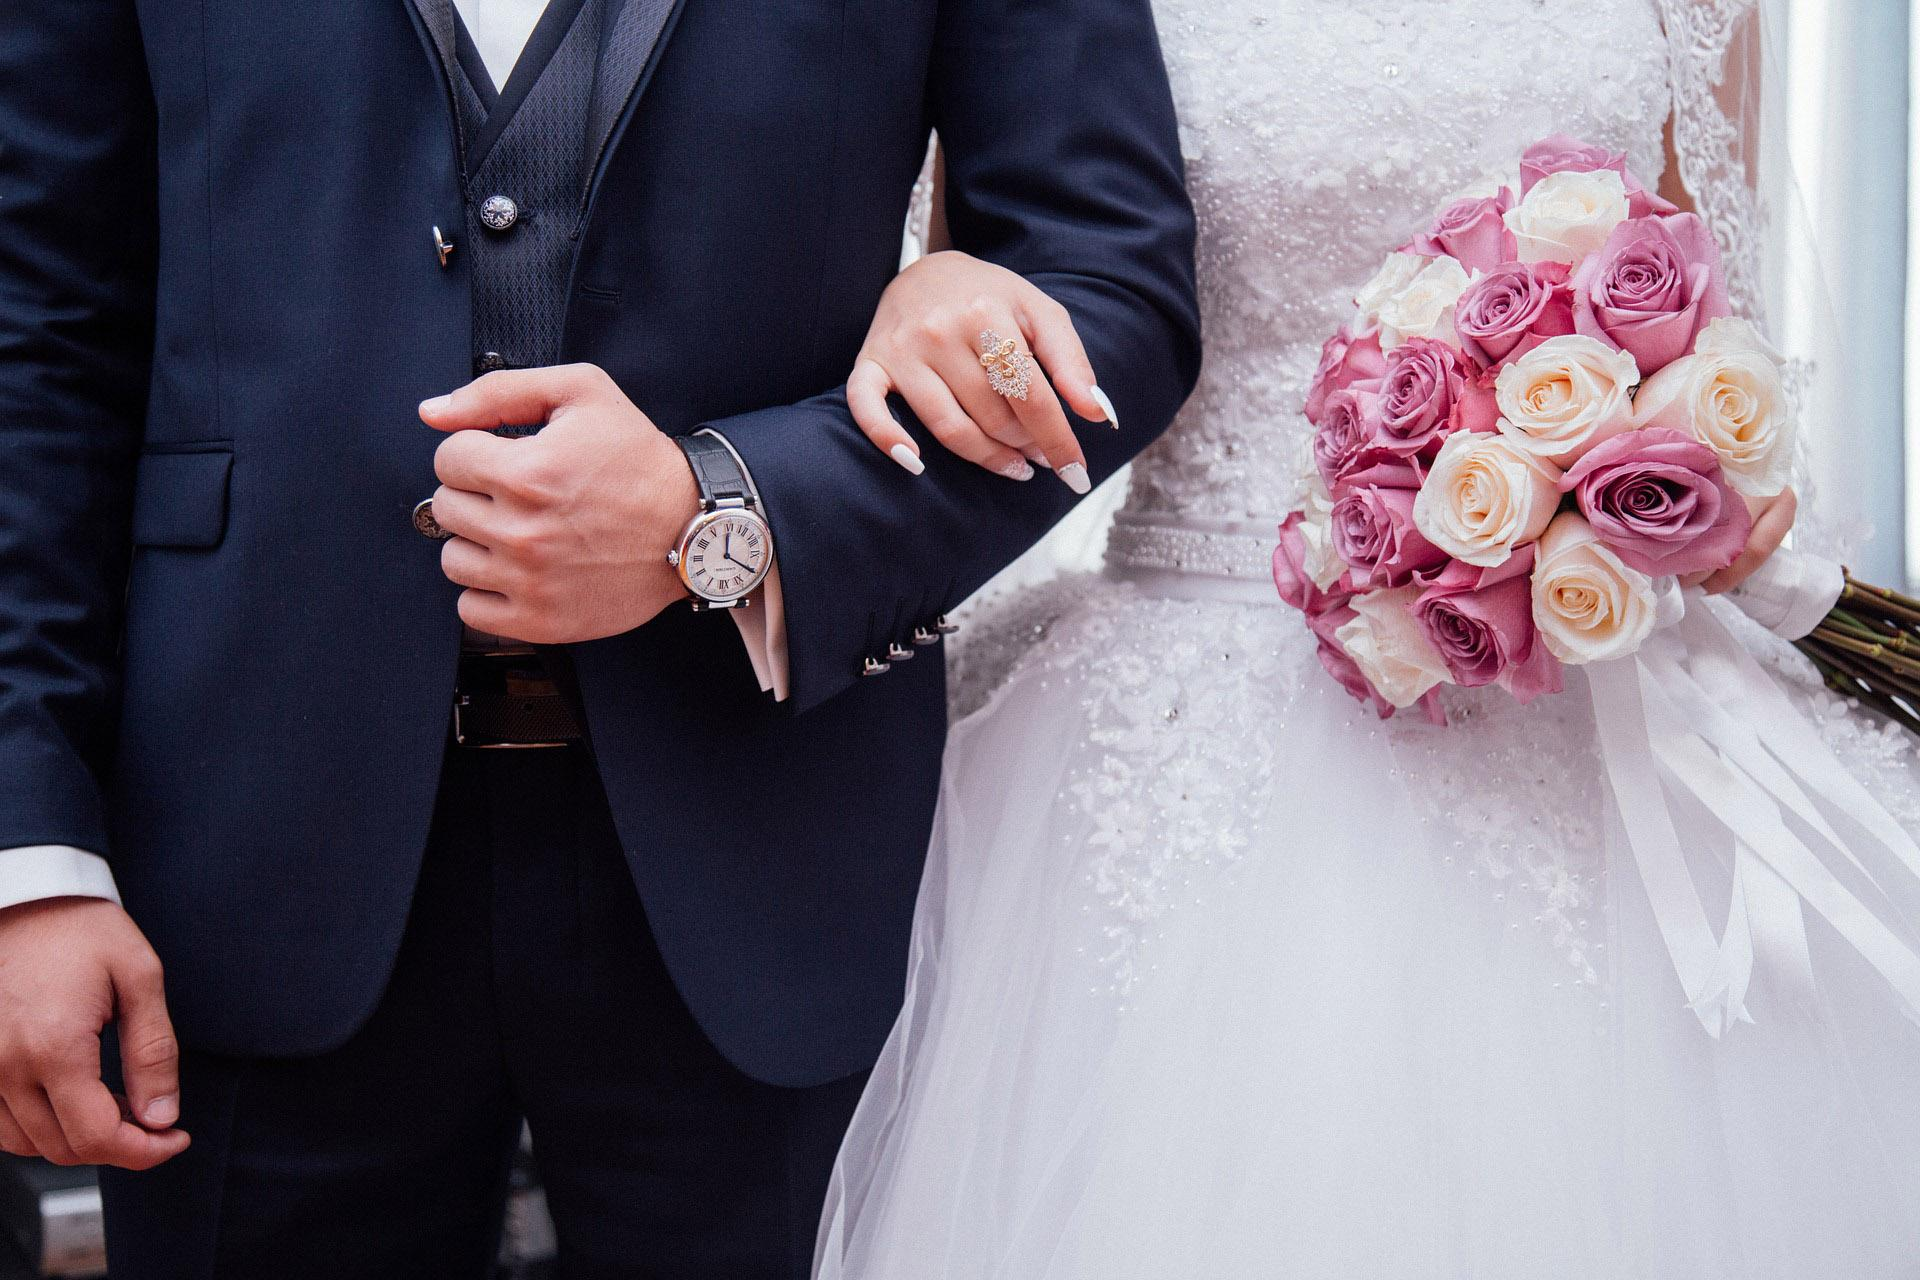 Going To A Wedding Or Planning One In 2020 Here S What You Can Expect Chicago News Wttw